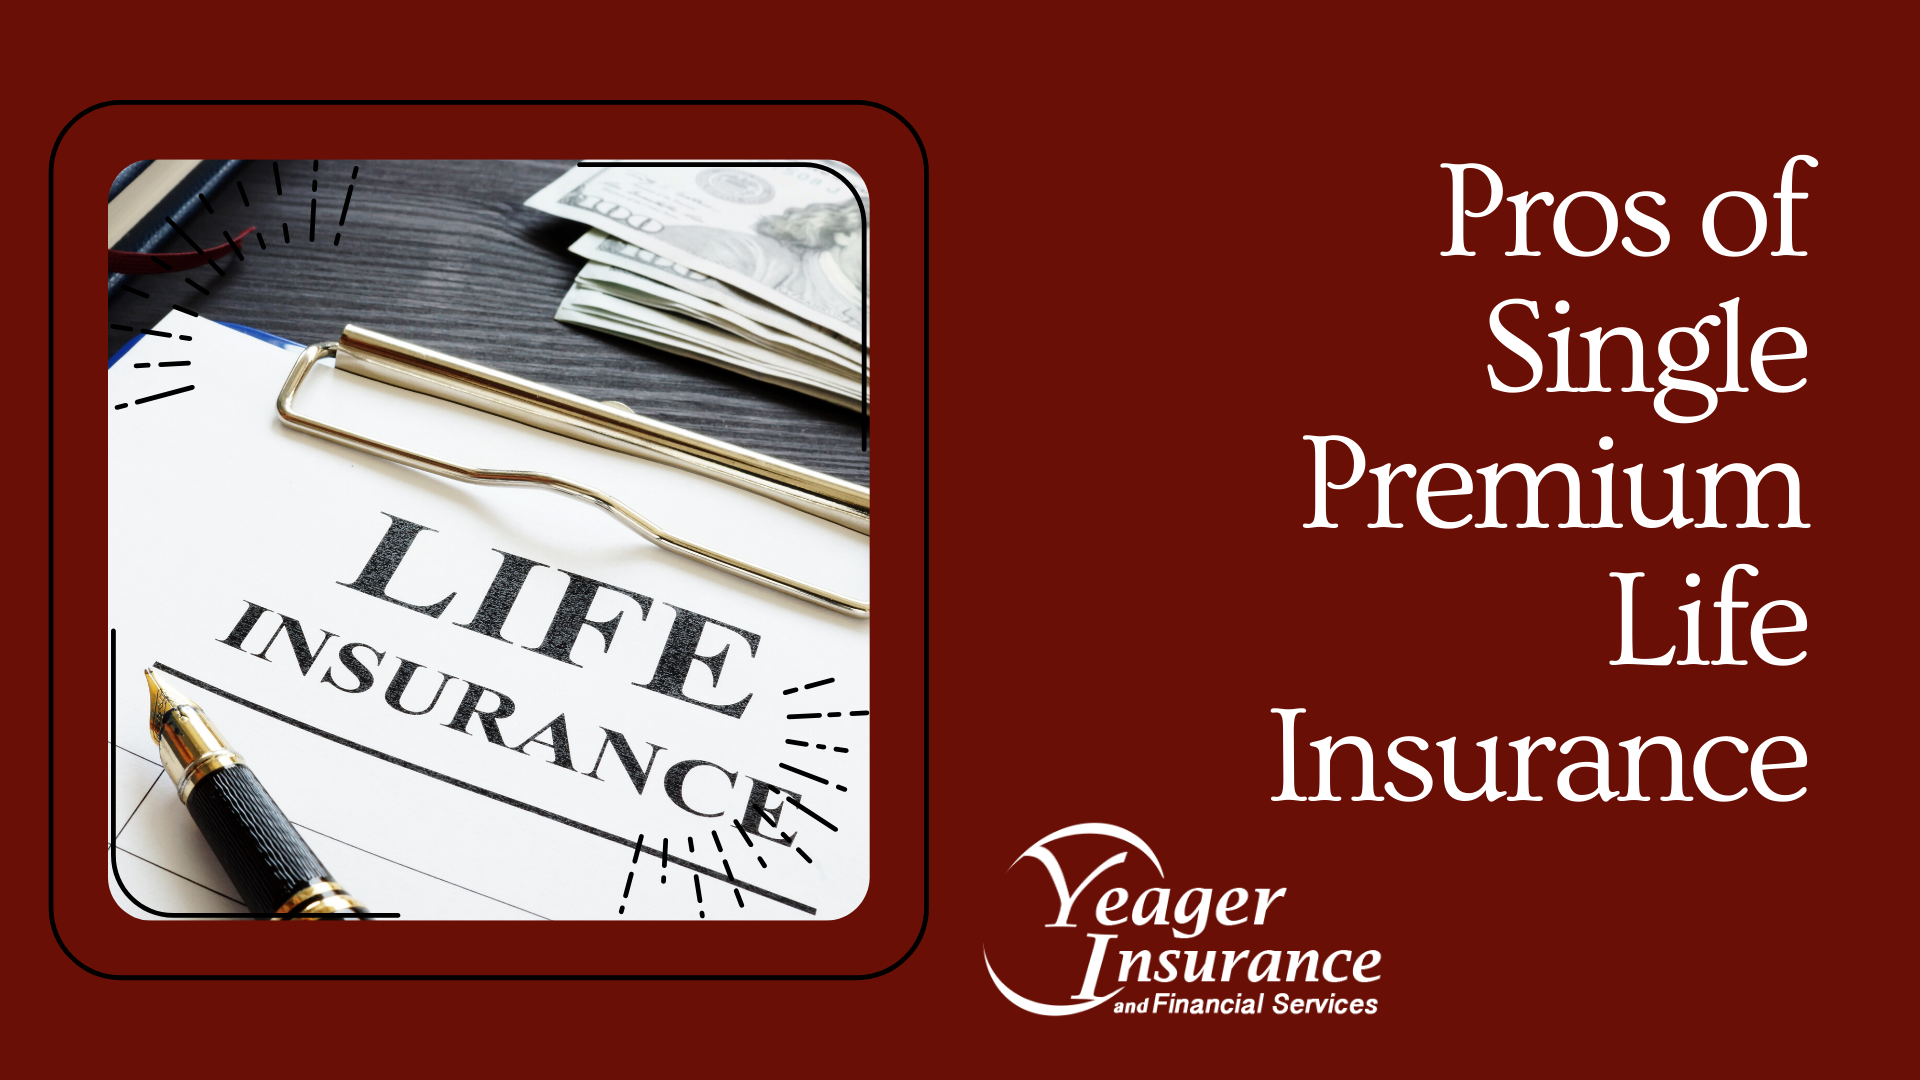 Pros of Single Premium Life Insurance - Yeager Insurance Blog